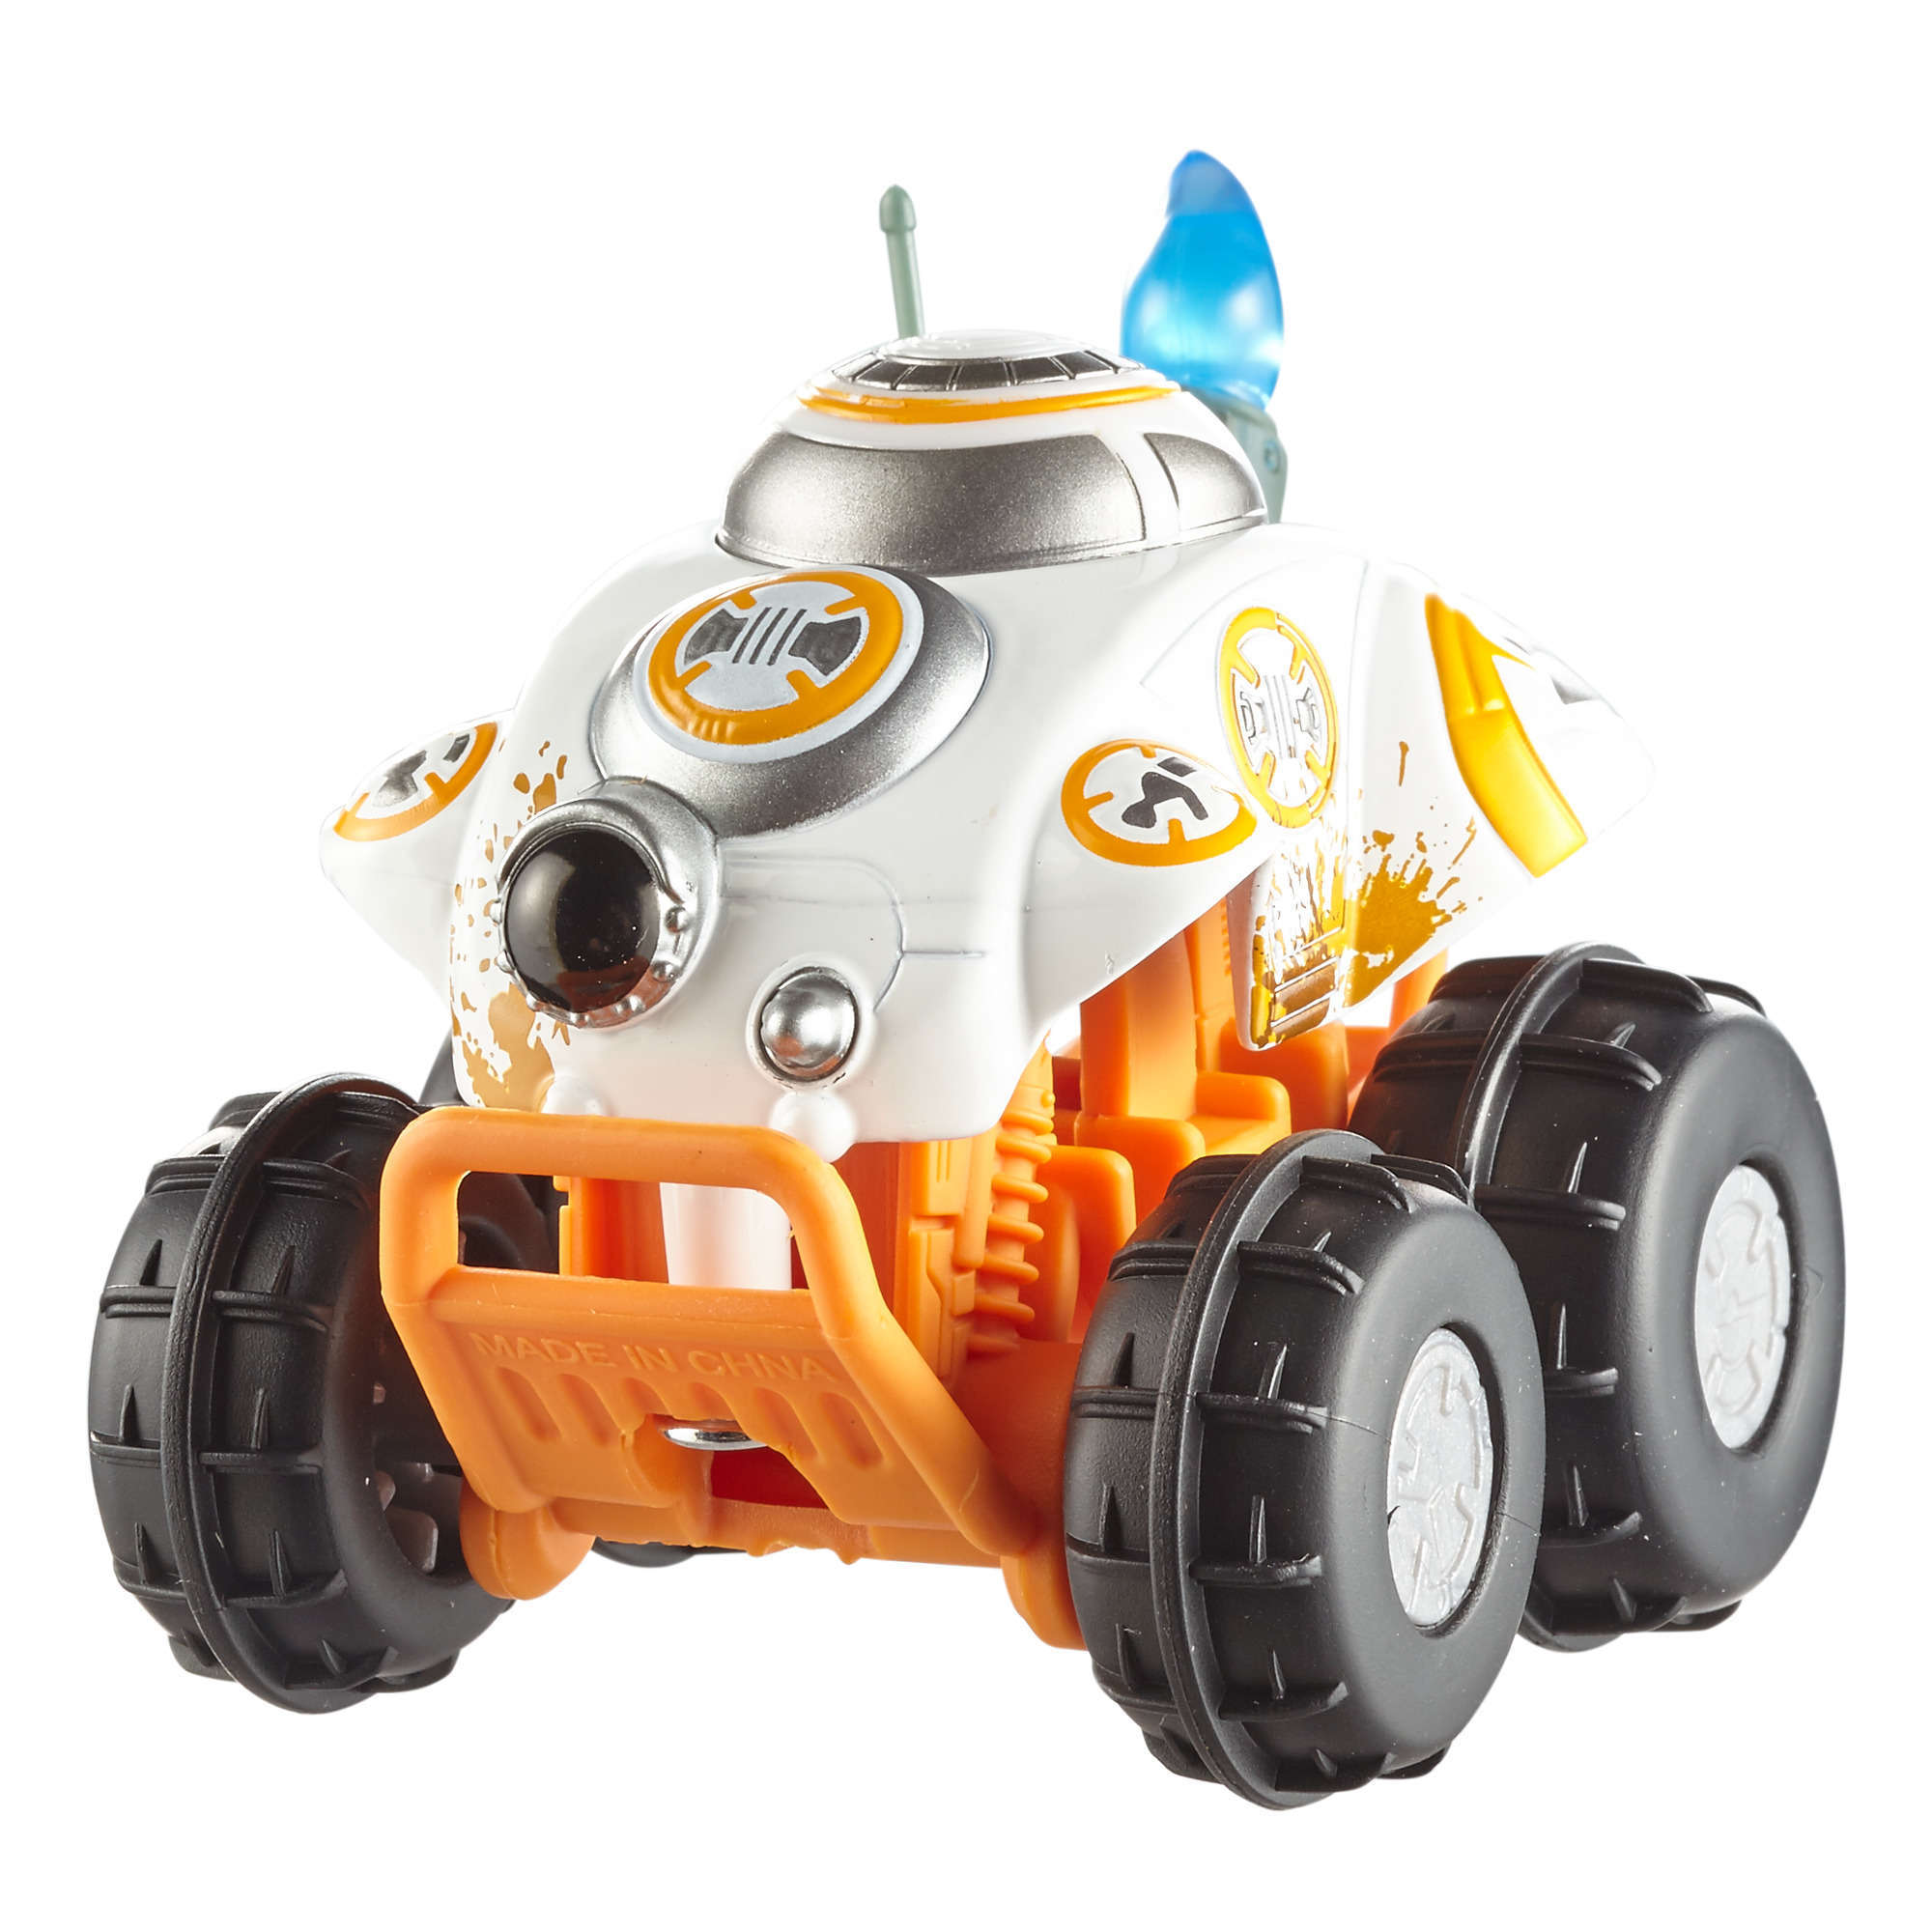 Hot Wheels Star Wars All-Terrain BB-8 1:43 Scale Vehicle